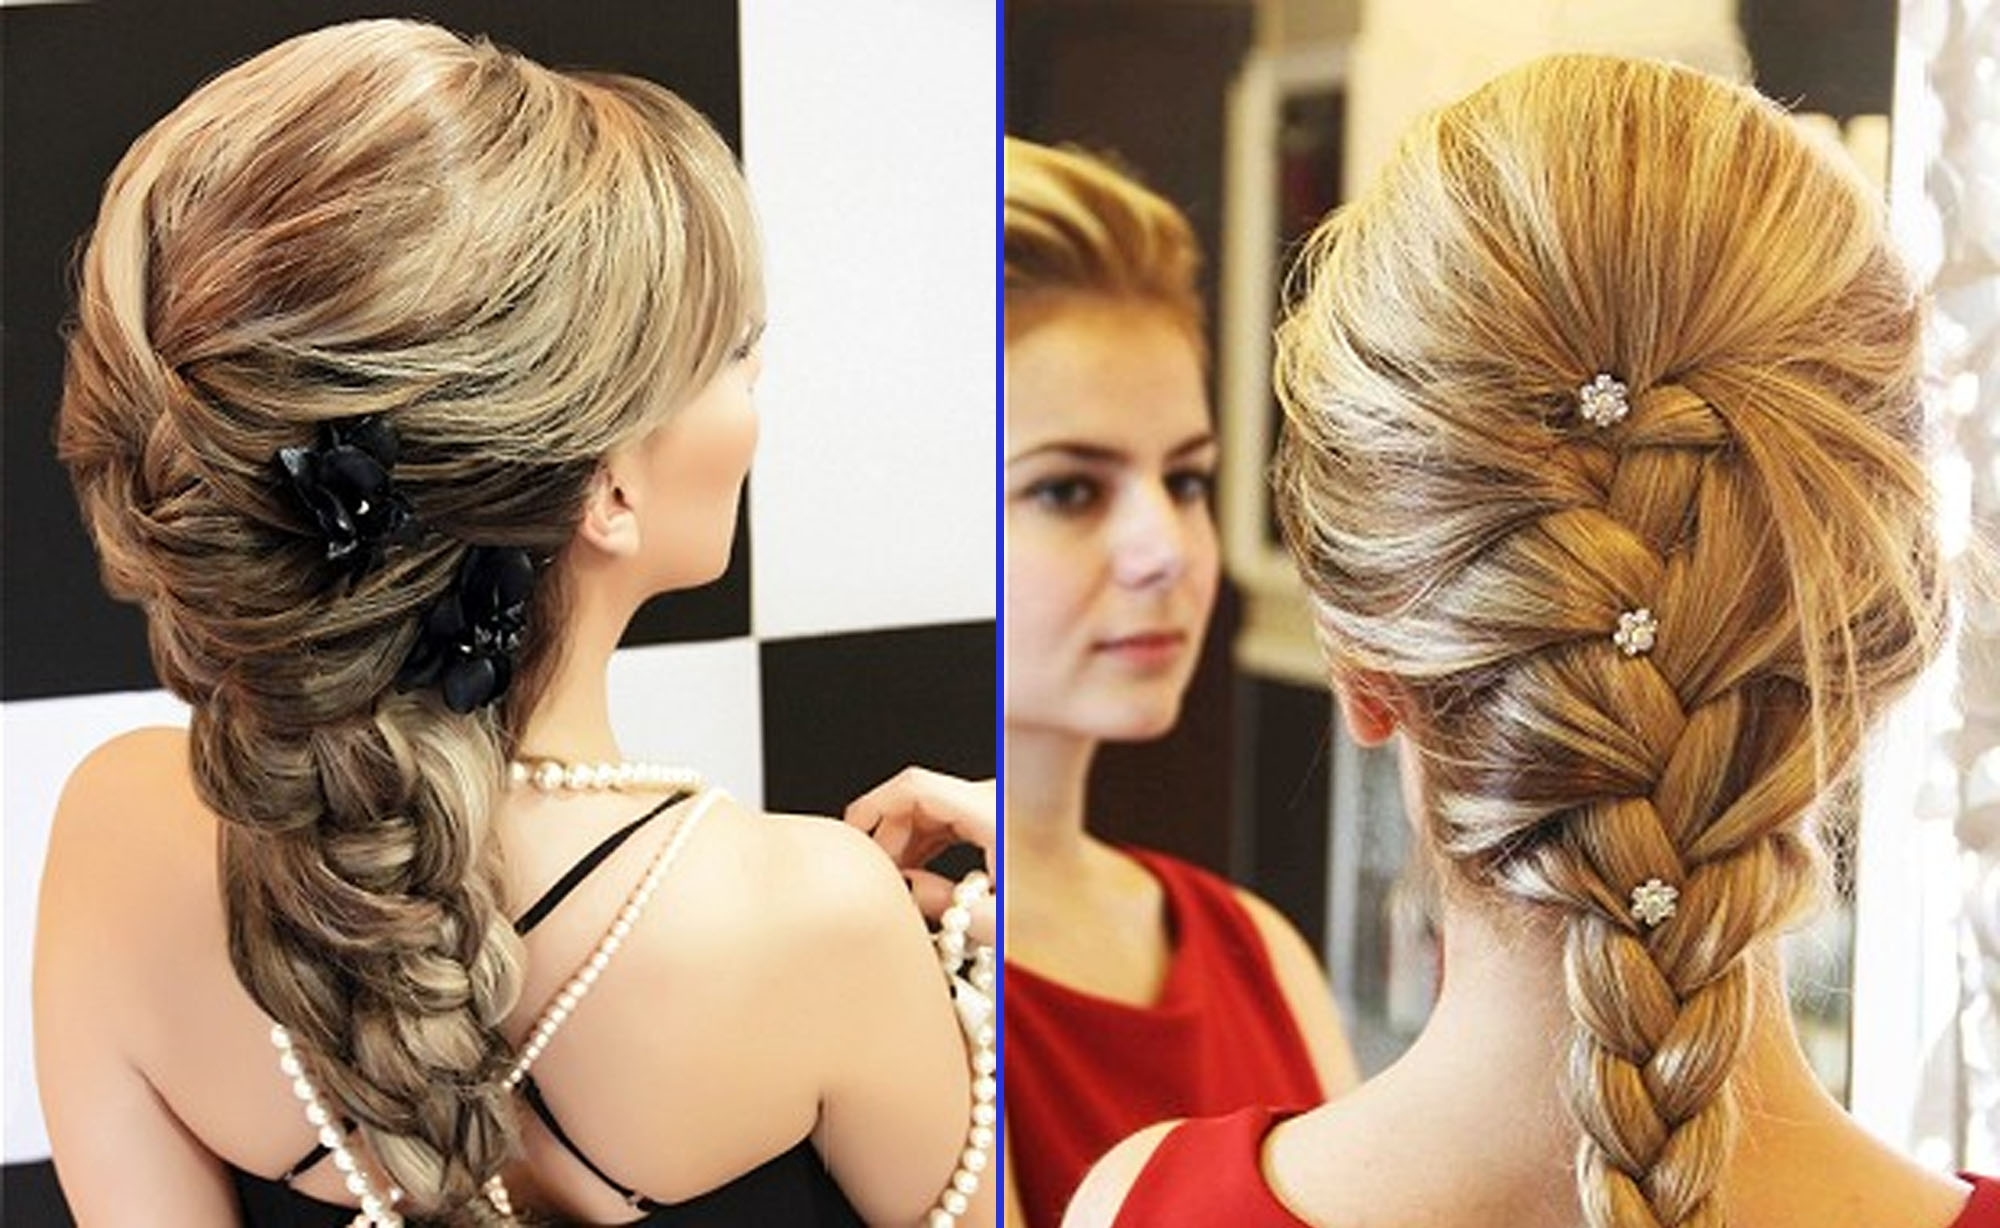 Current Wedding Hairstyles For Long Hair With Braids With Braided Hairstyles For Long Hair Wedding – Hairstyle For Women & Man (View 9 of 15)